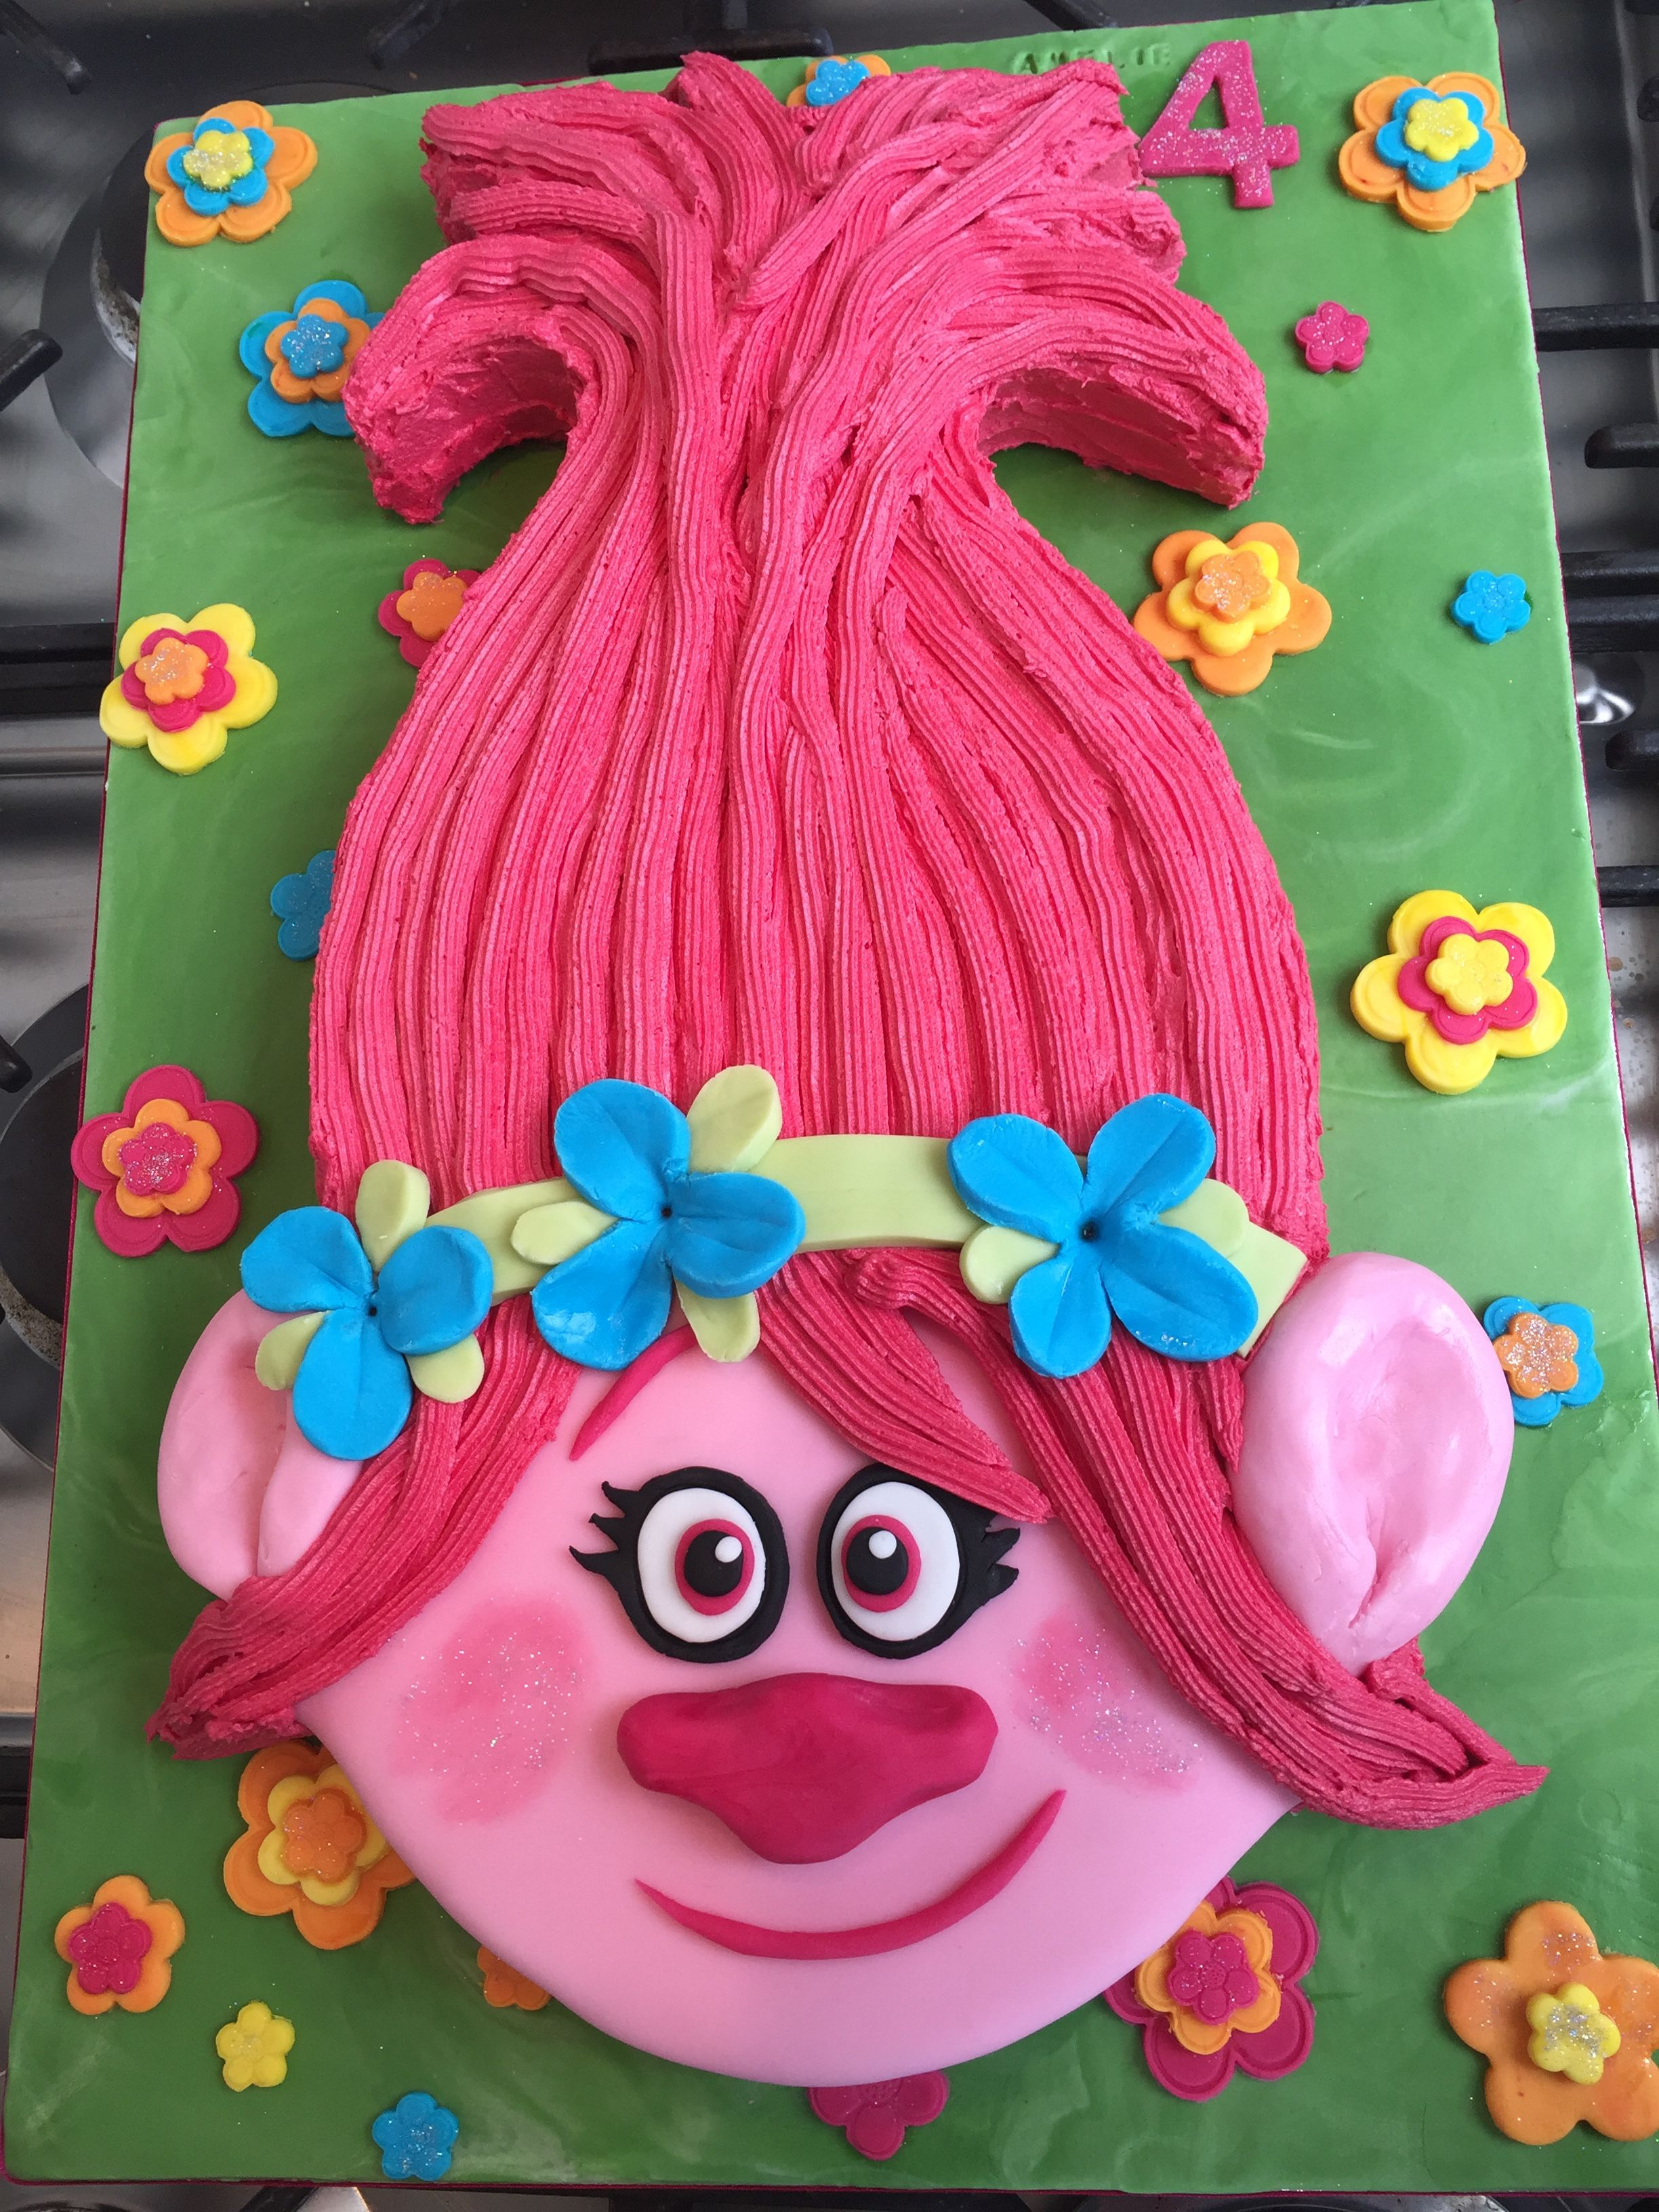 Princess Poppy Trolls Cake I Like Their Facial Features And Flower